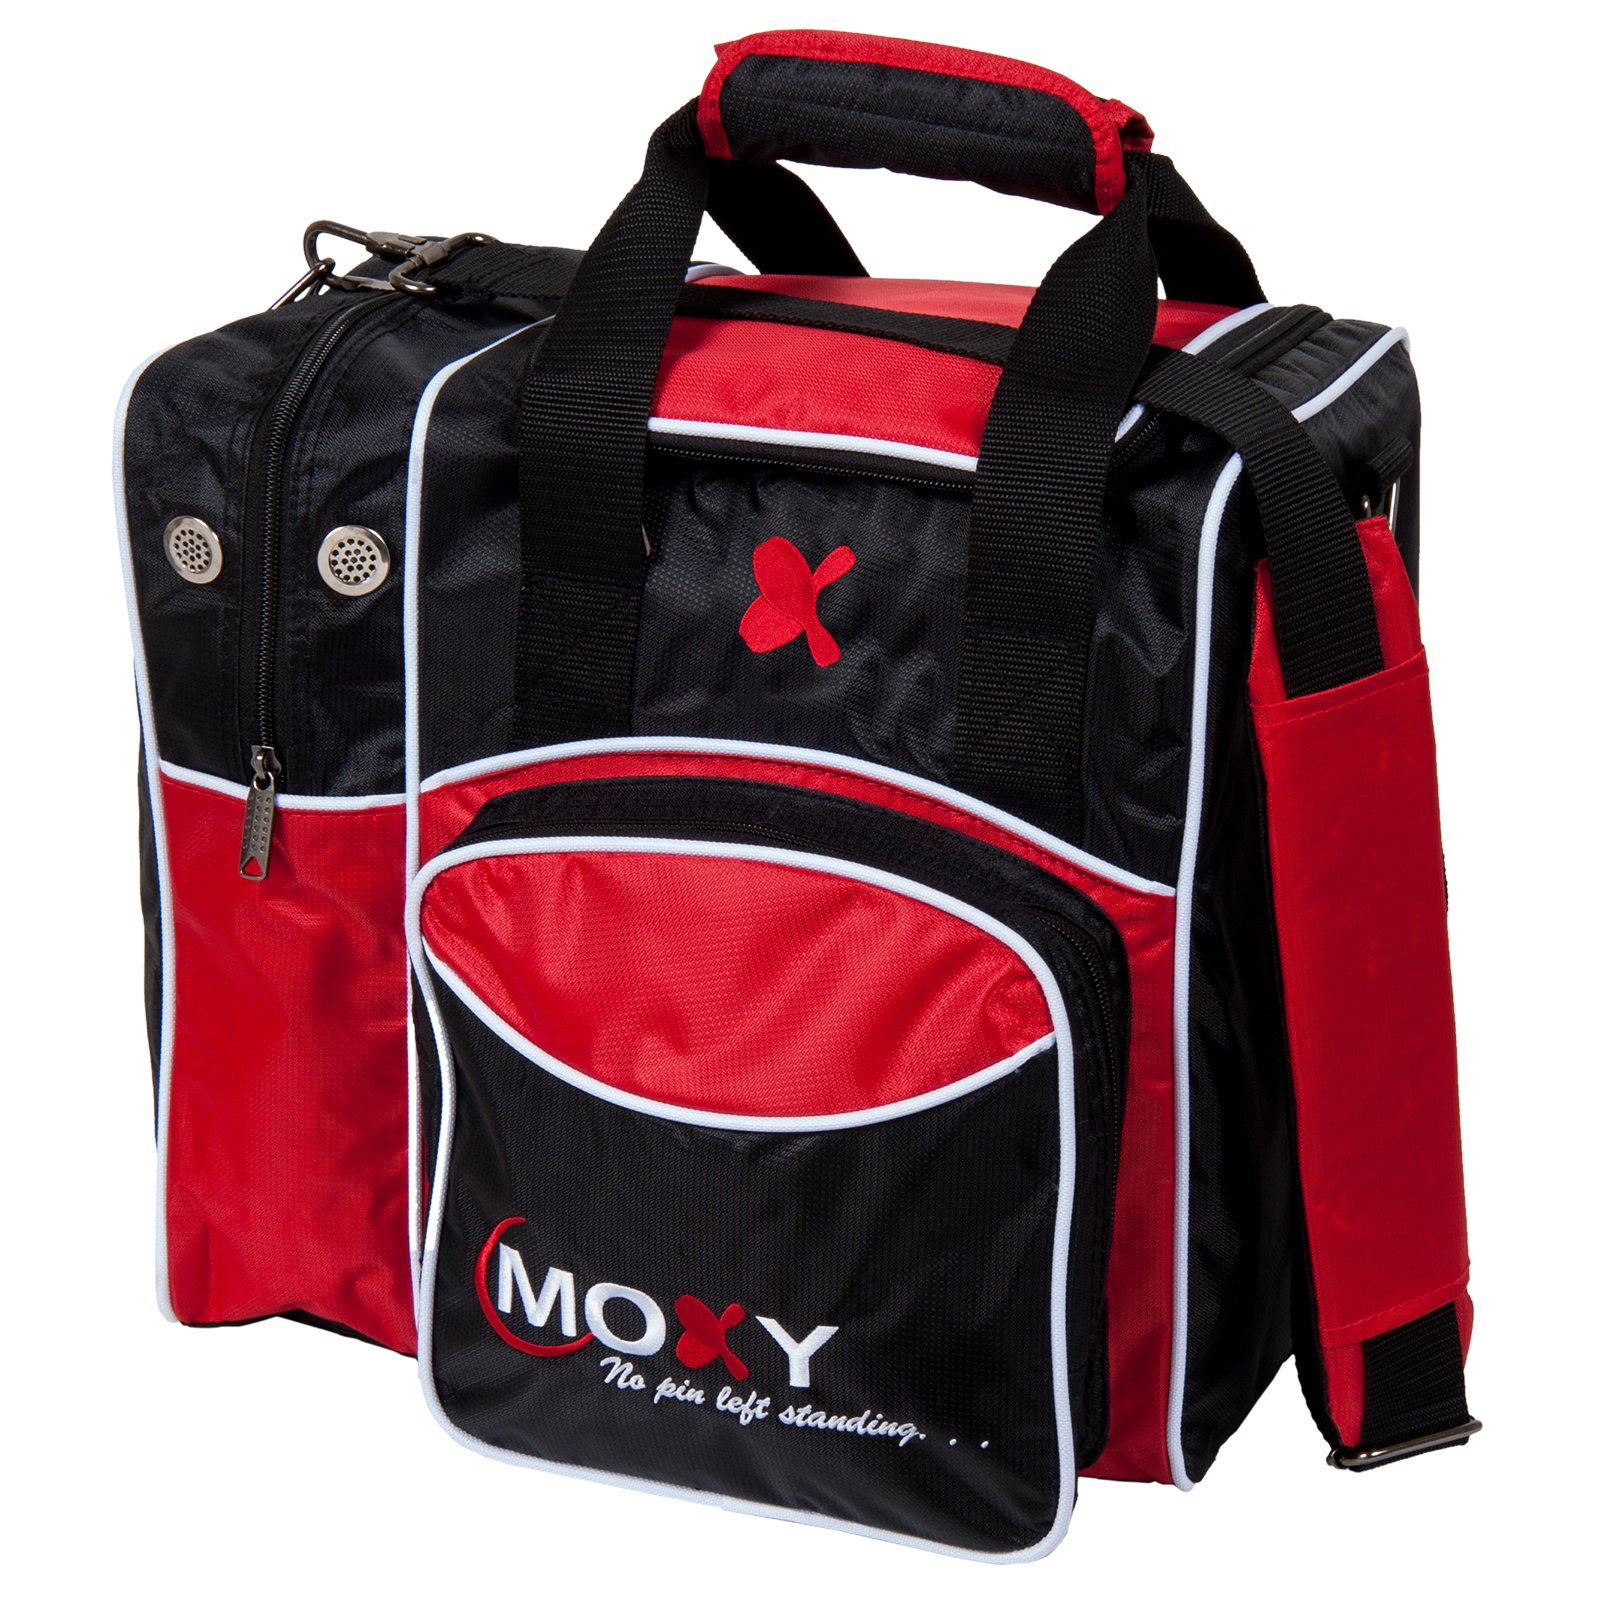 Moxy Bowling Products Single Deluxe Bowling Bag (Red)